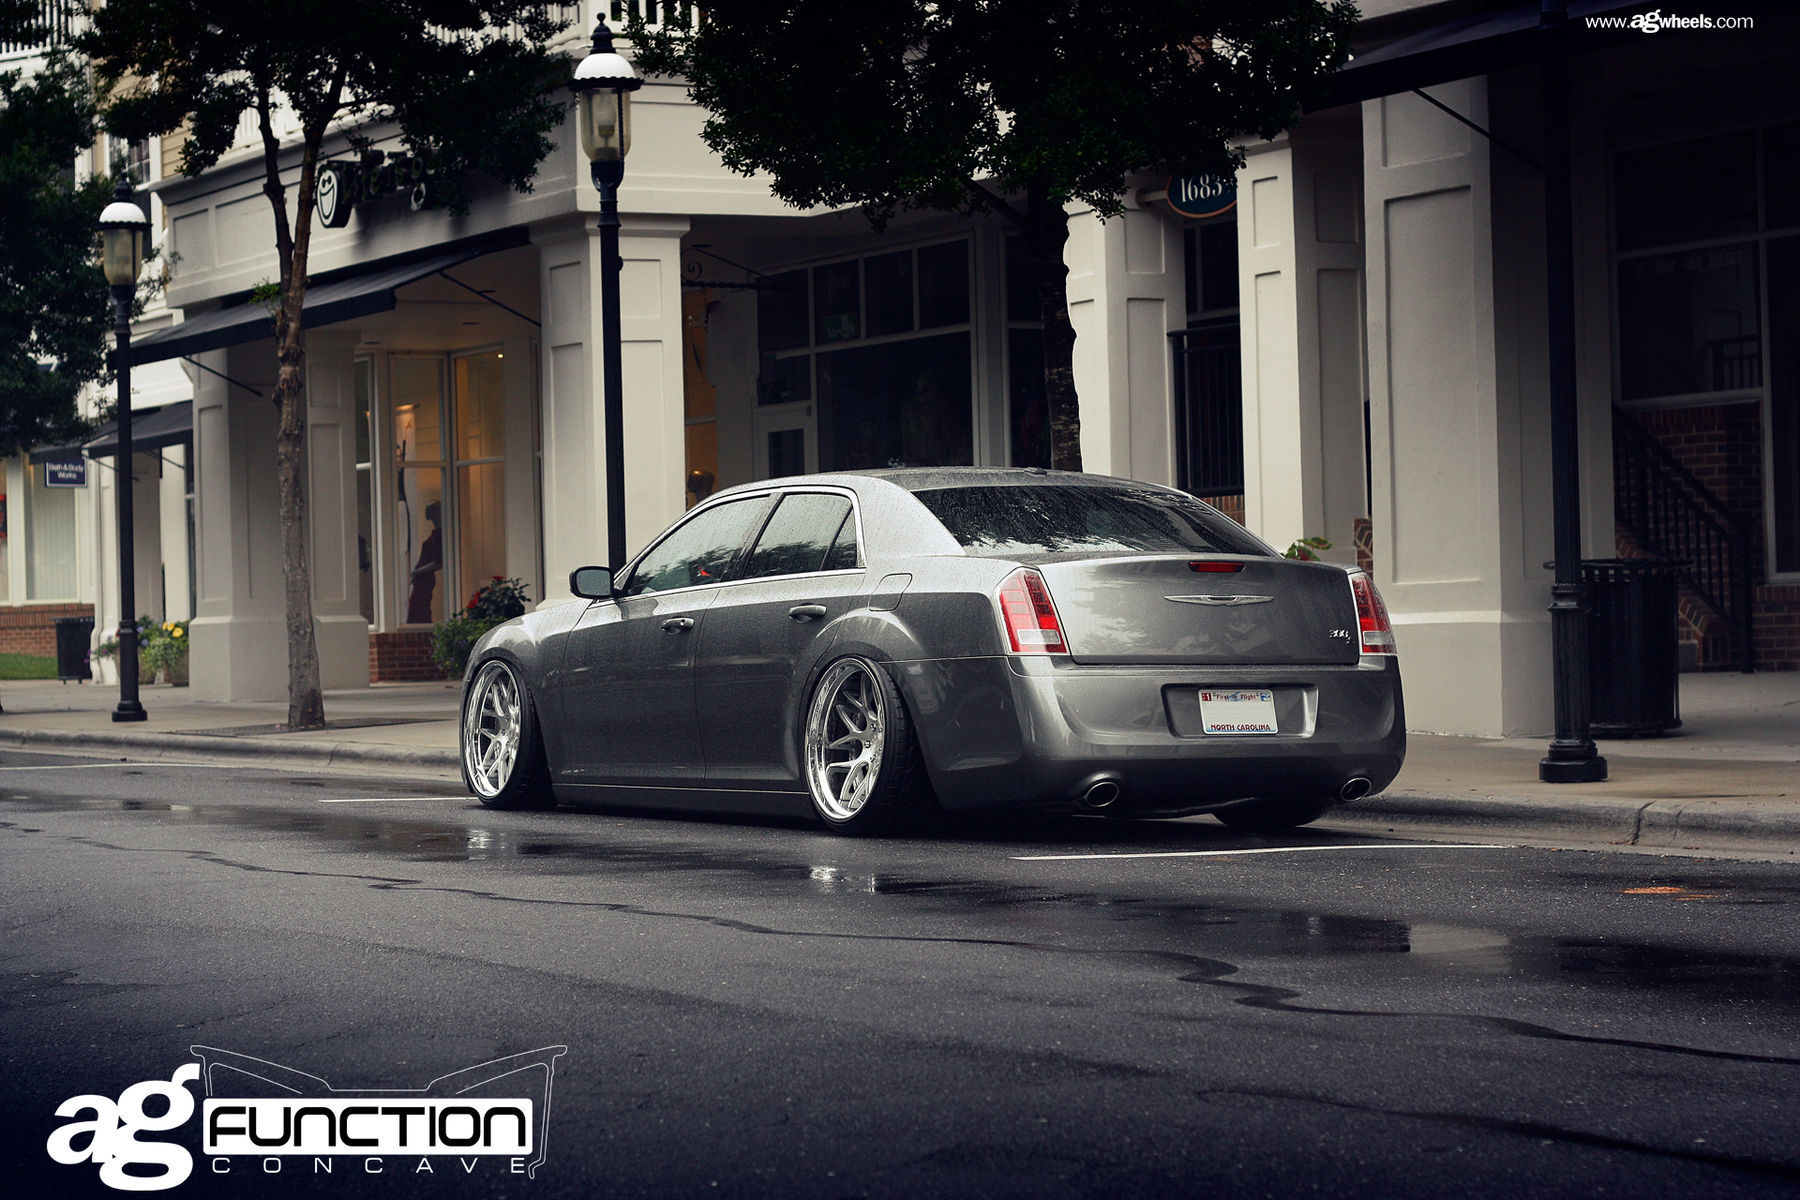 Chrysler 300 | Chrysler 300 S